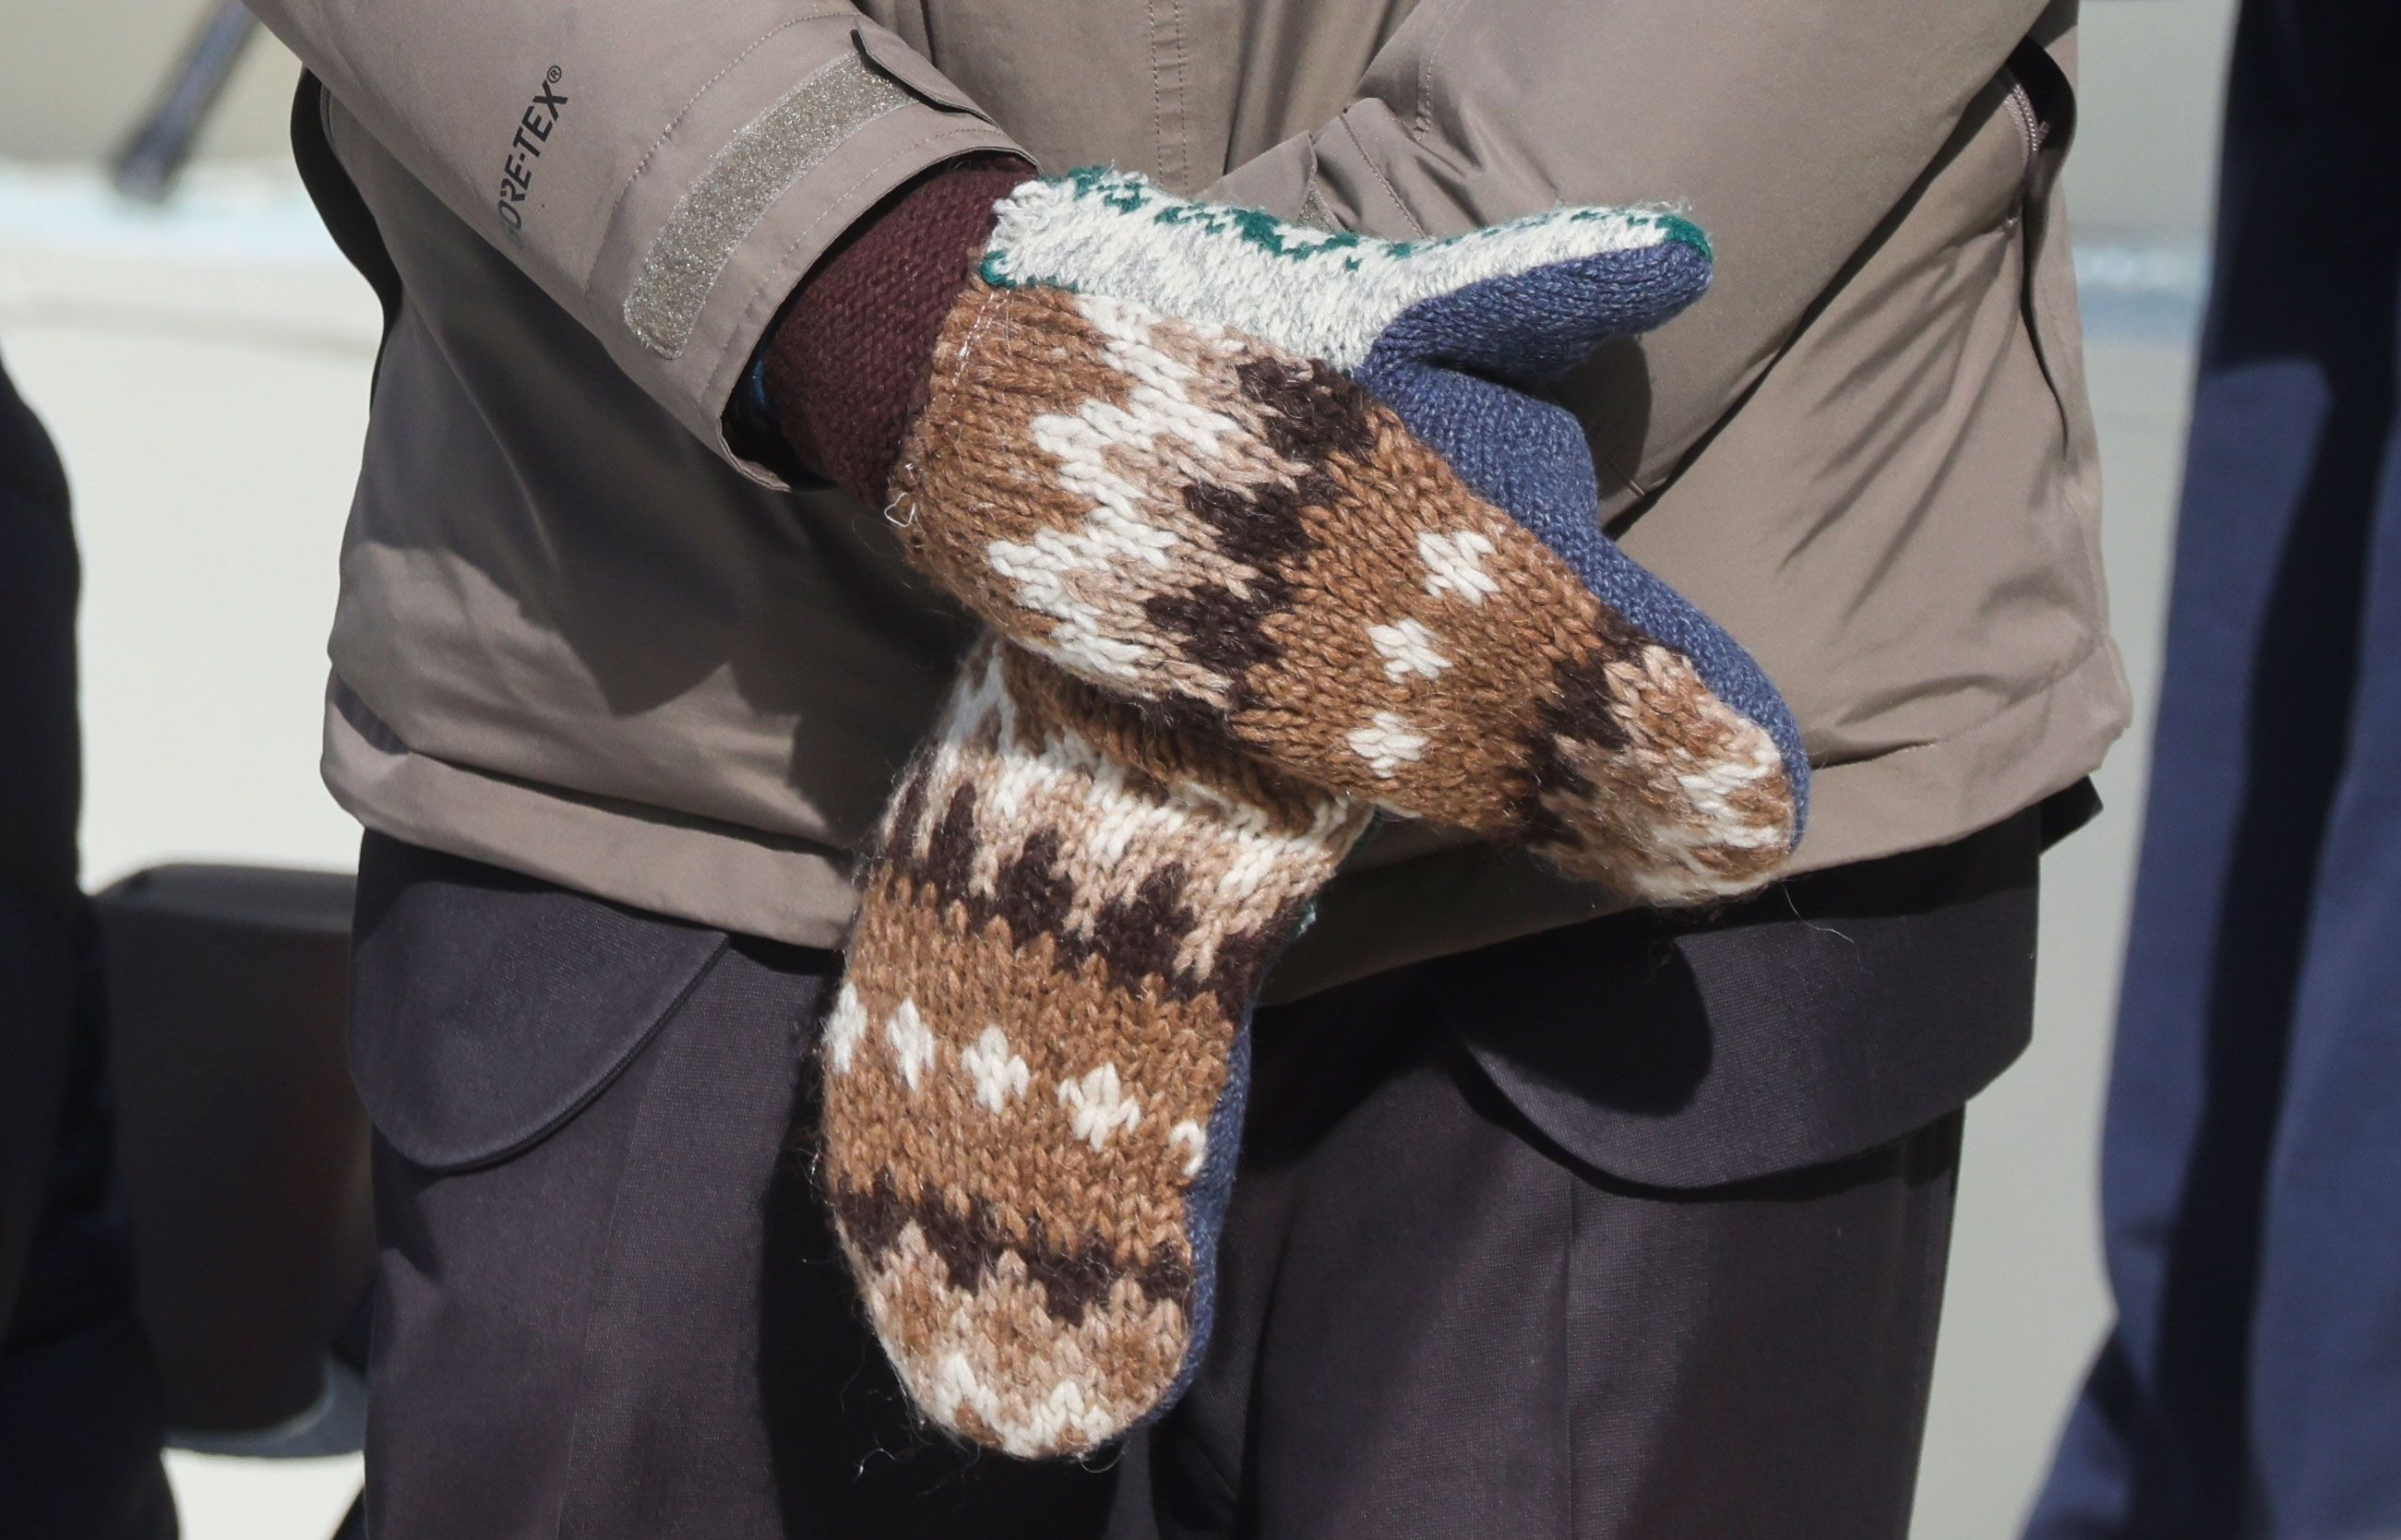 5 Places To Get Recycled Mittens Like Bernie Sanders'